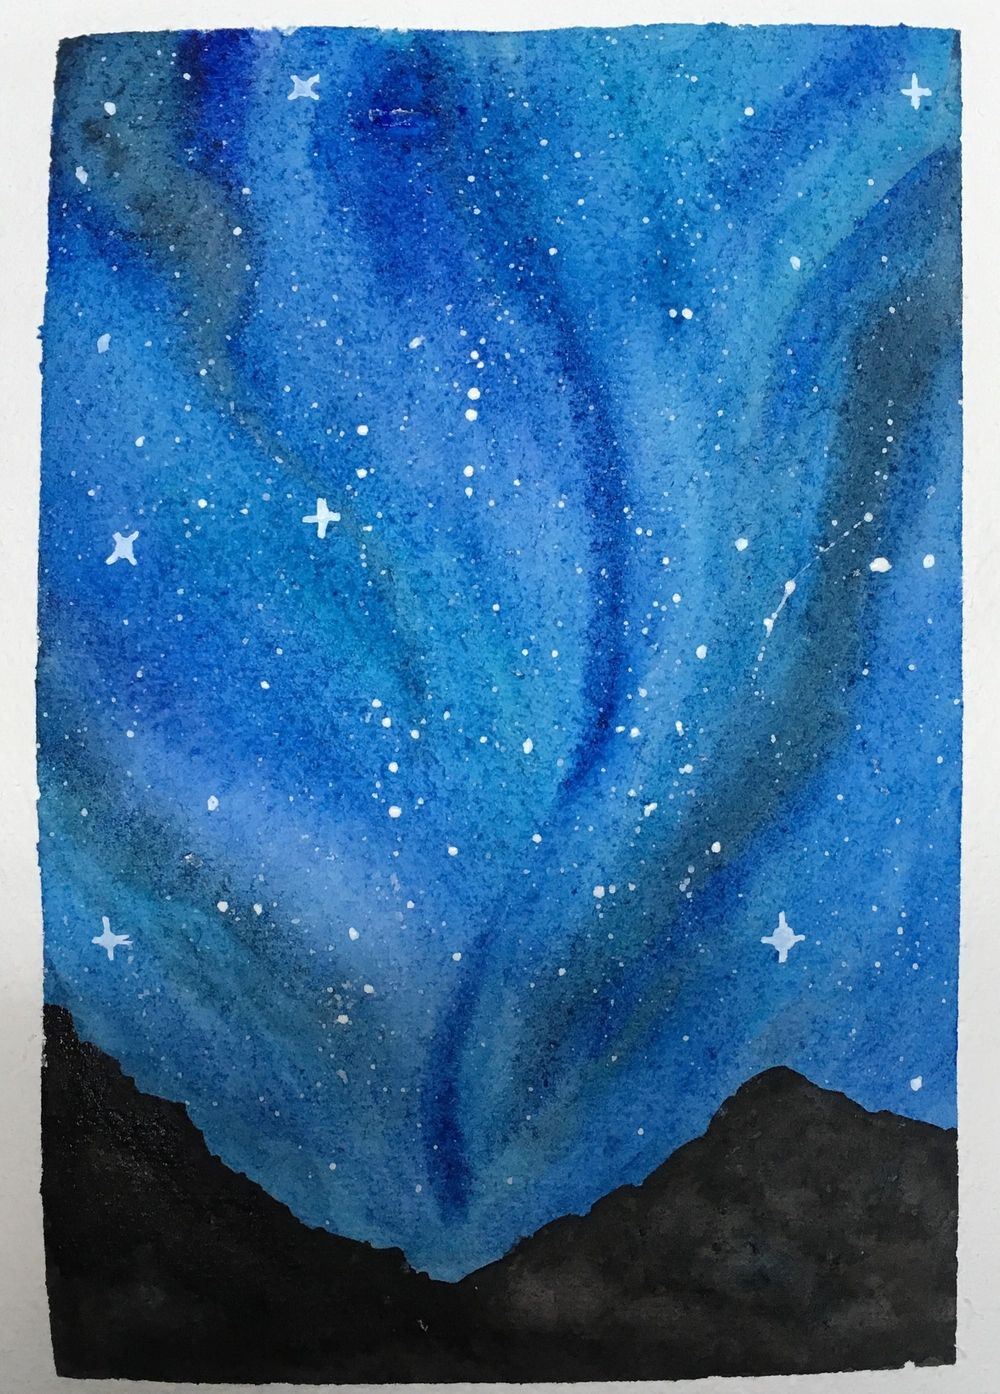 Night sky - image 1 - student project